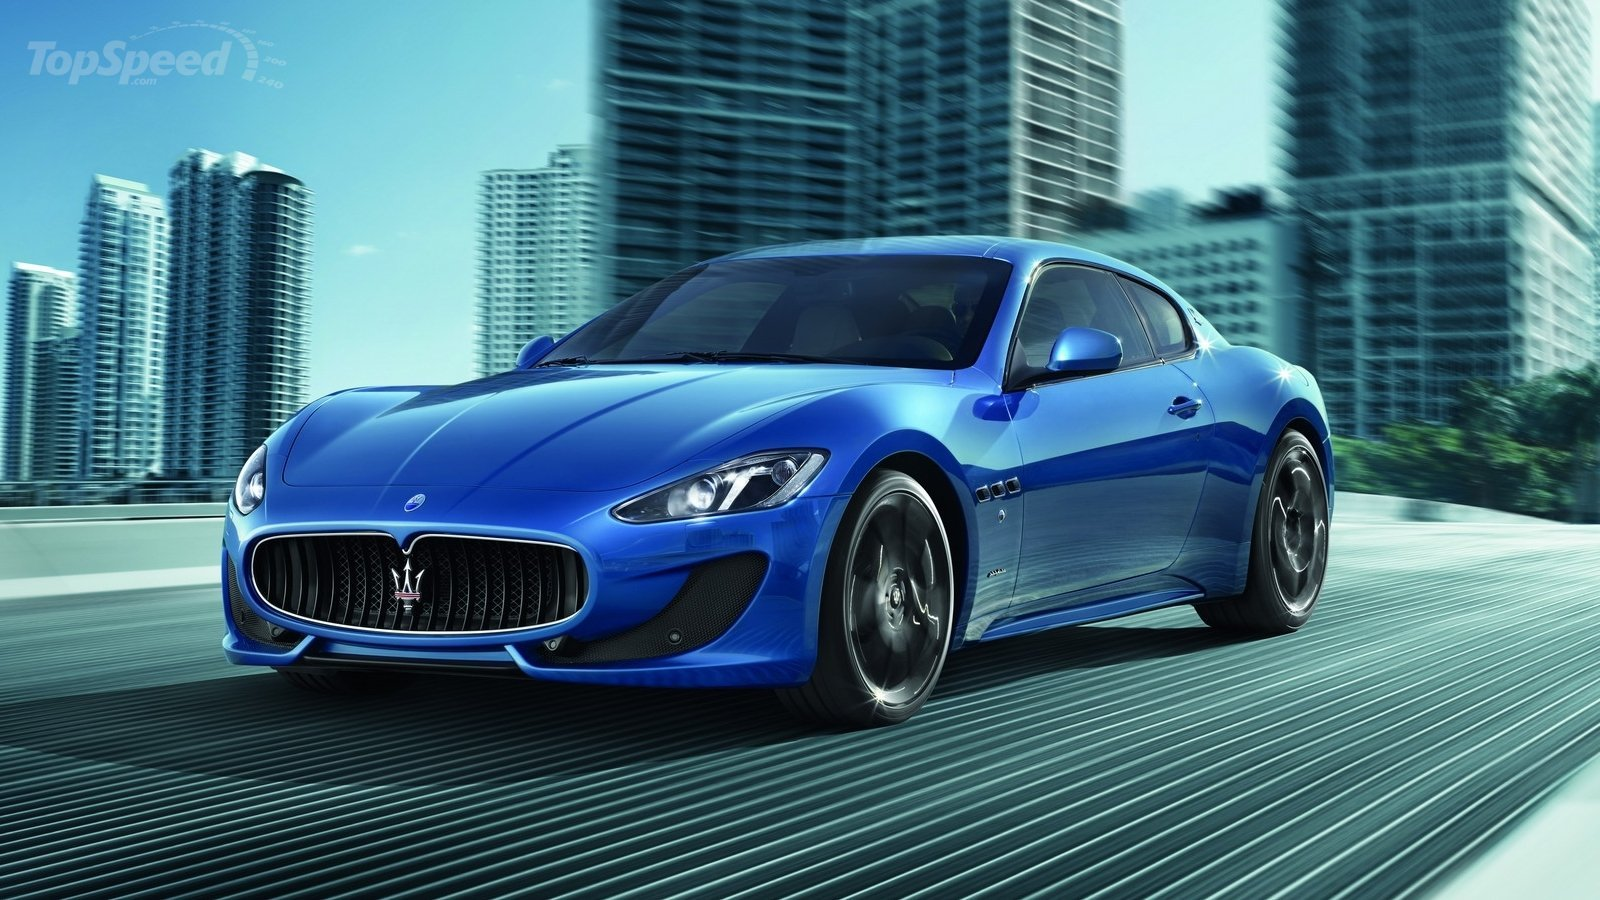 Maserati coupe photo - 5